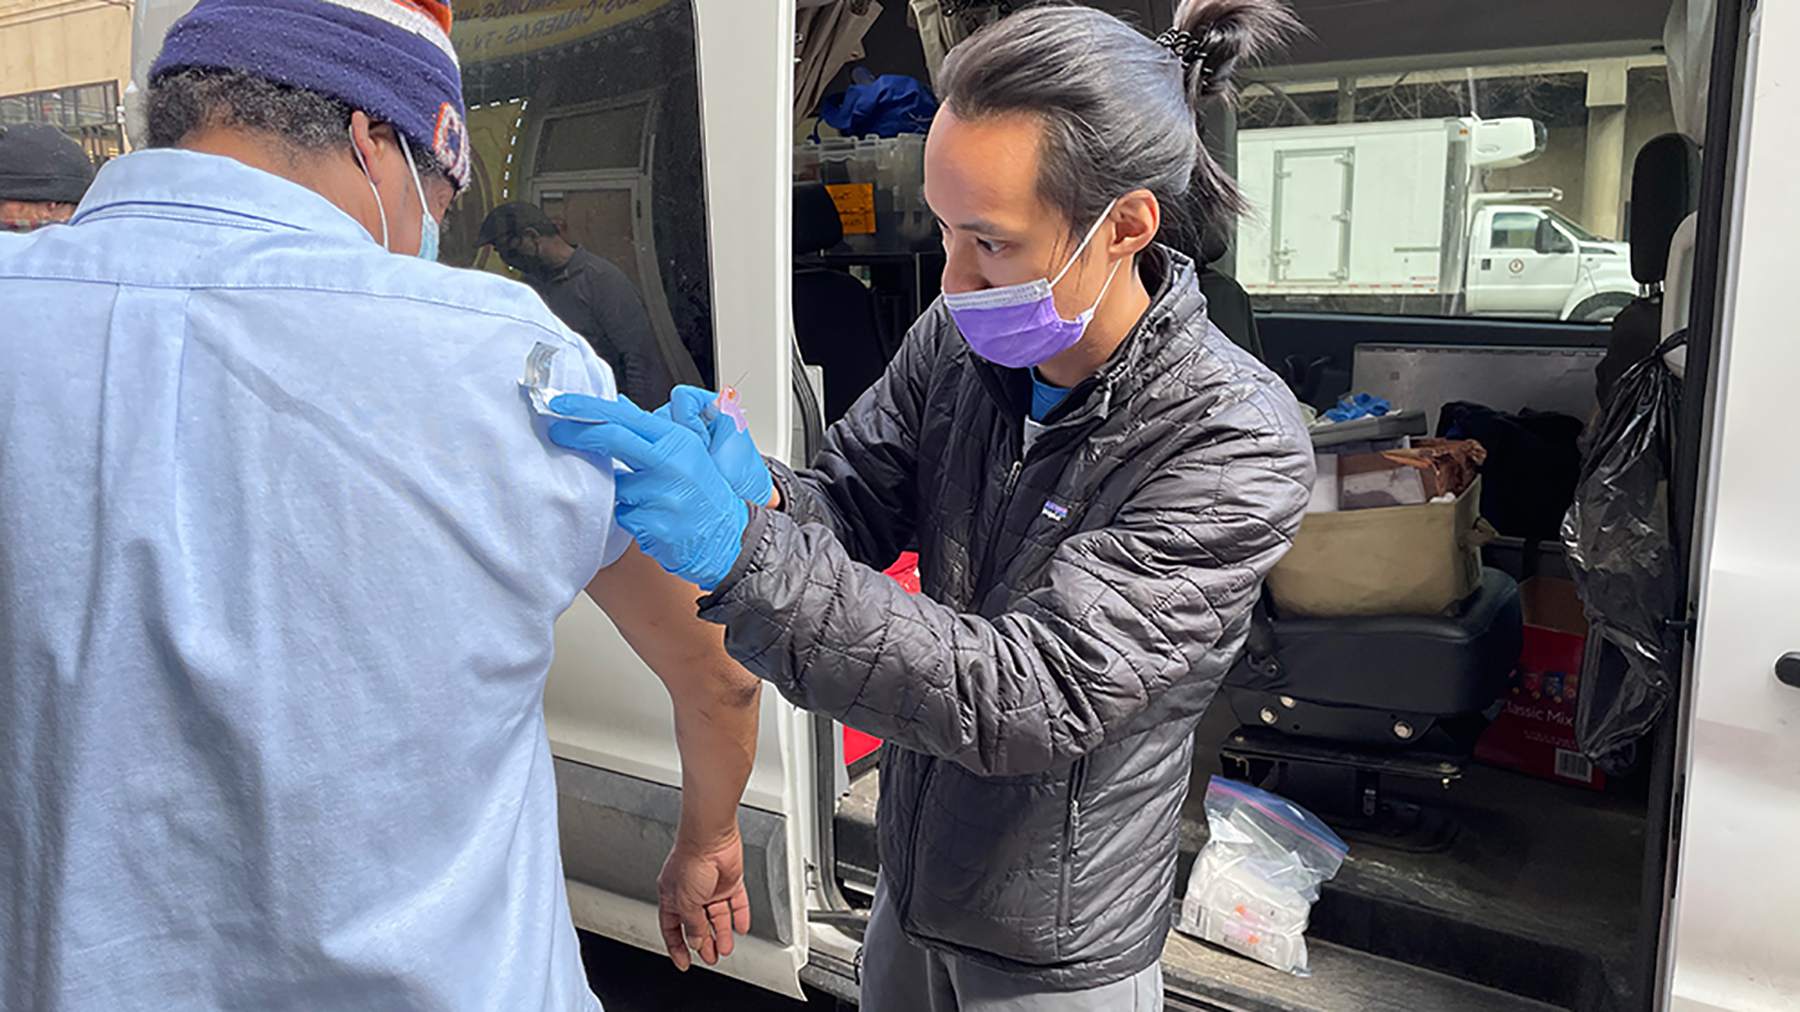 Dr. Nathan Lin (right), a medical resident, prepares a Covid-19 vaccine for a street medicine patient. Lin works with the Night Ministry, which provides health care and supportive services to Chicago's unsheltered homeless population. The organization received financial support from the Fund for Health Equity to expand its efforts. (Courtesy photo)